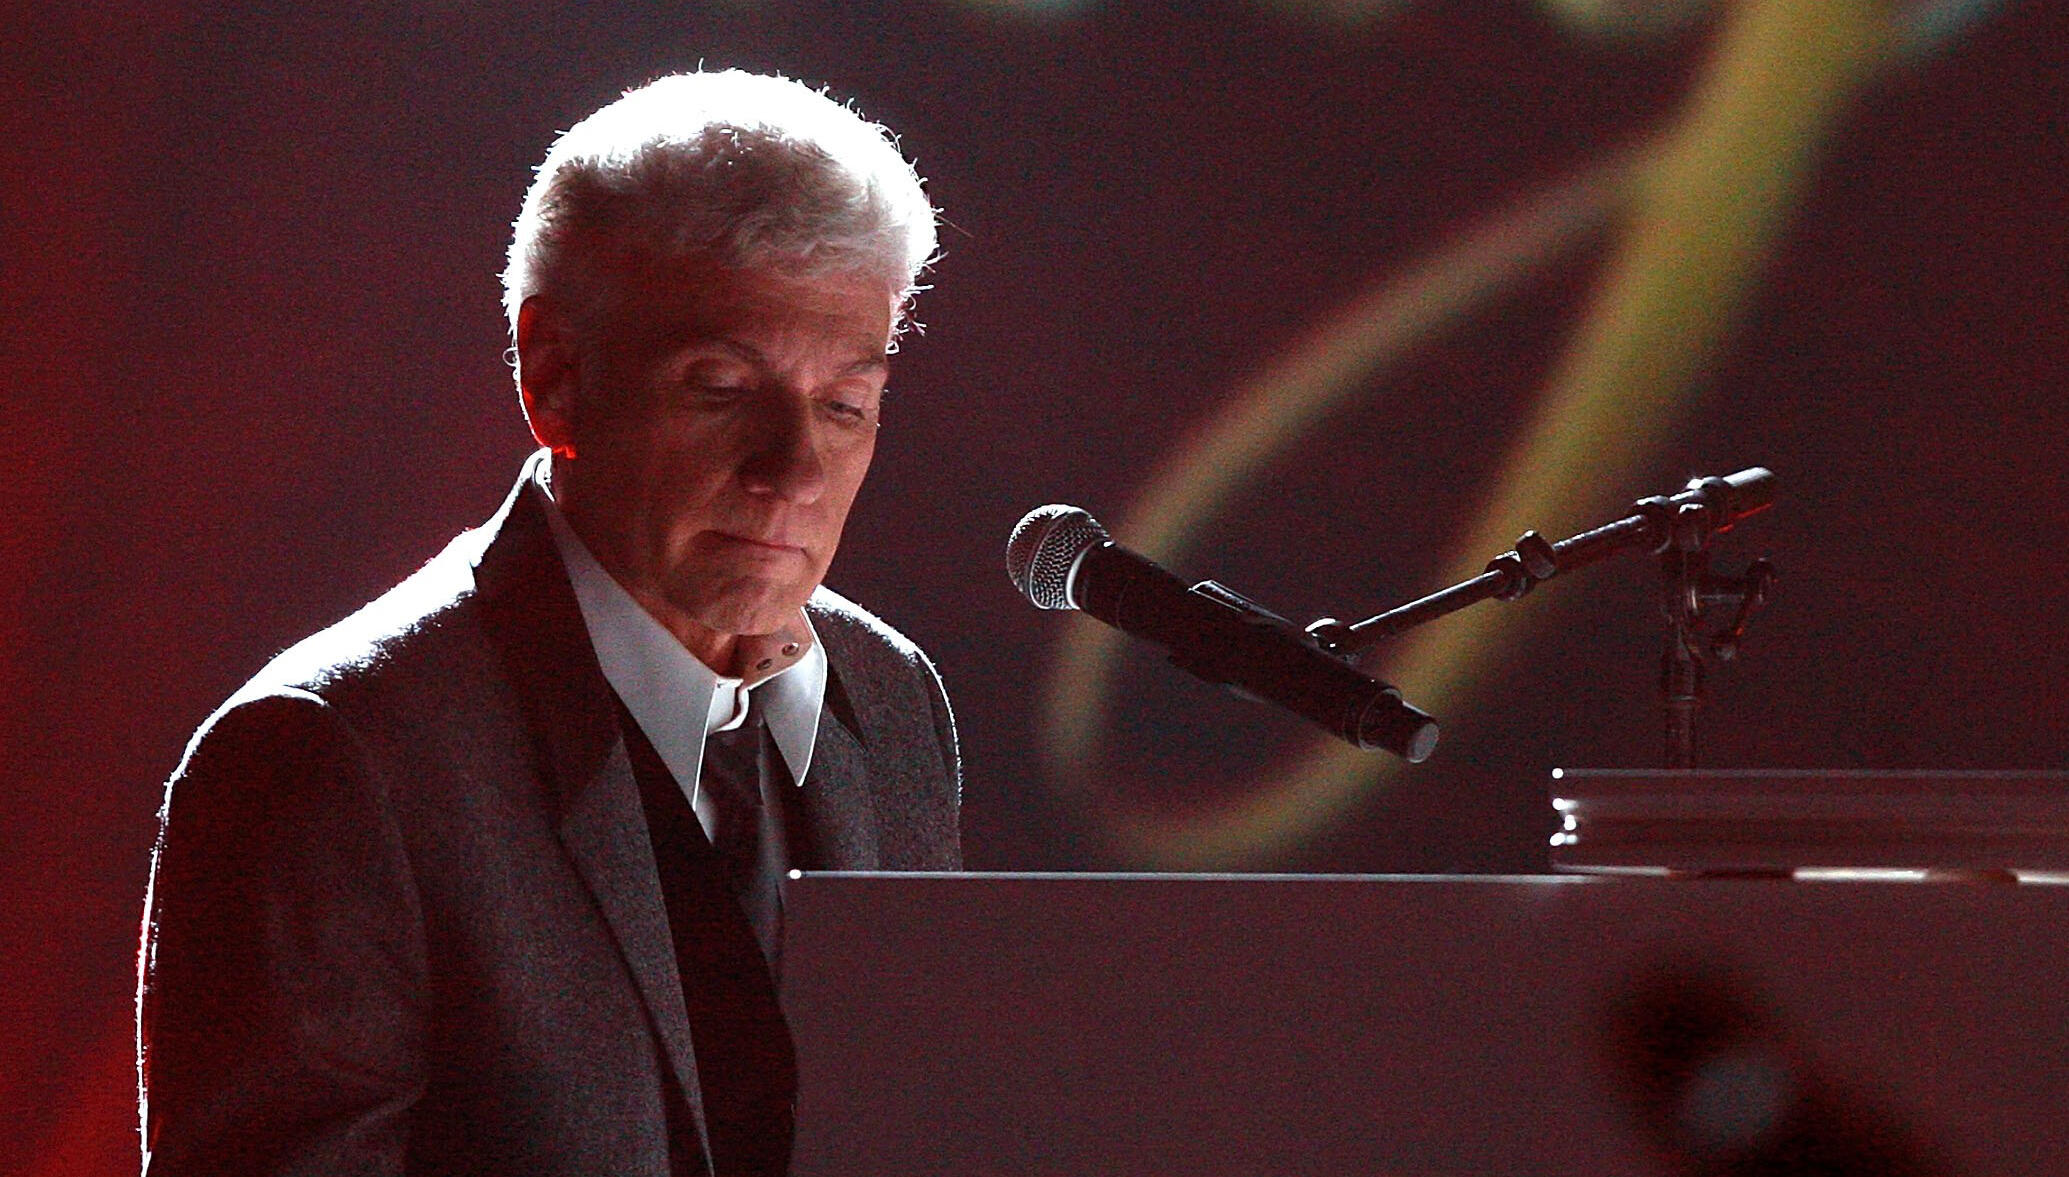 Dennis DeYoung Takes On The News Media In New Solo Single, Music Video